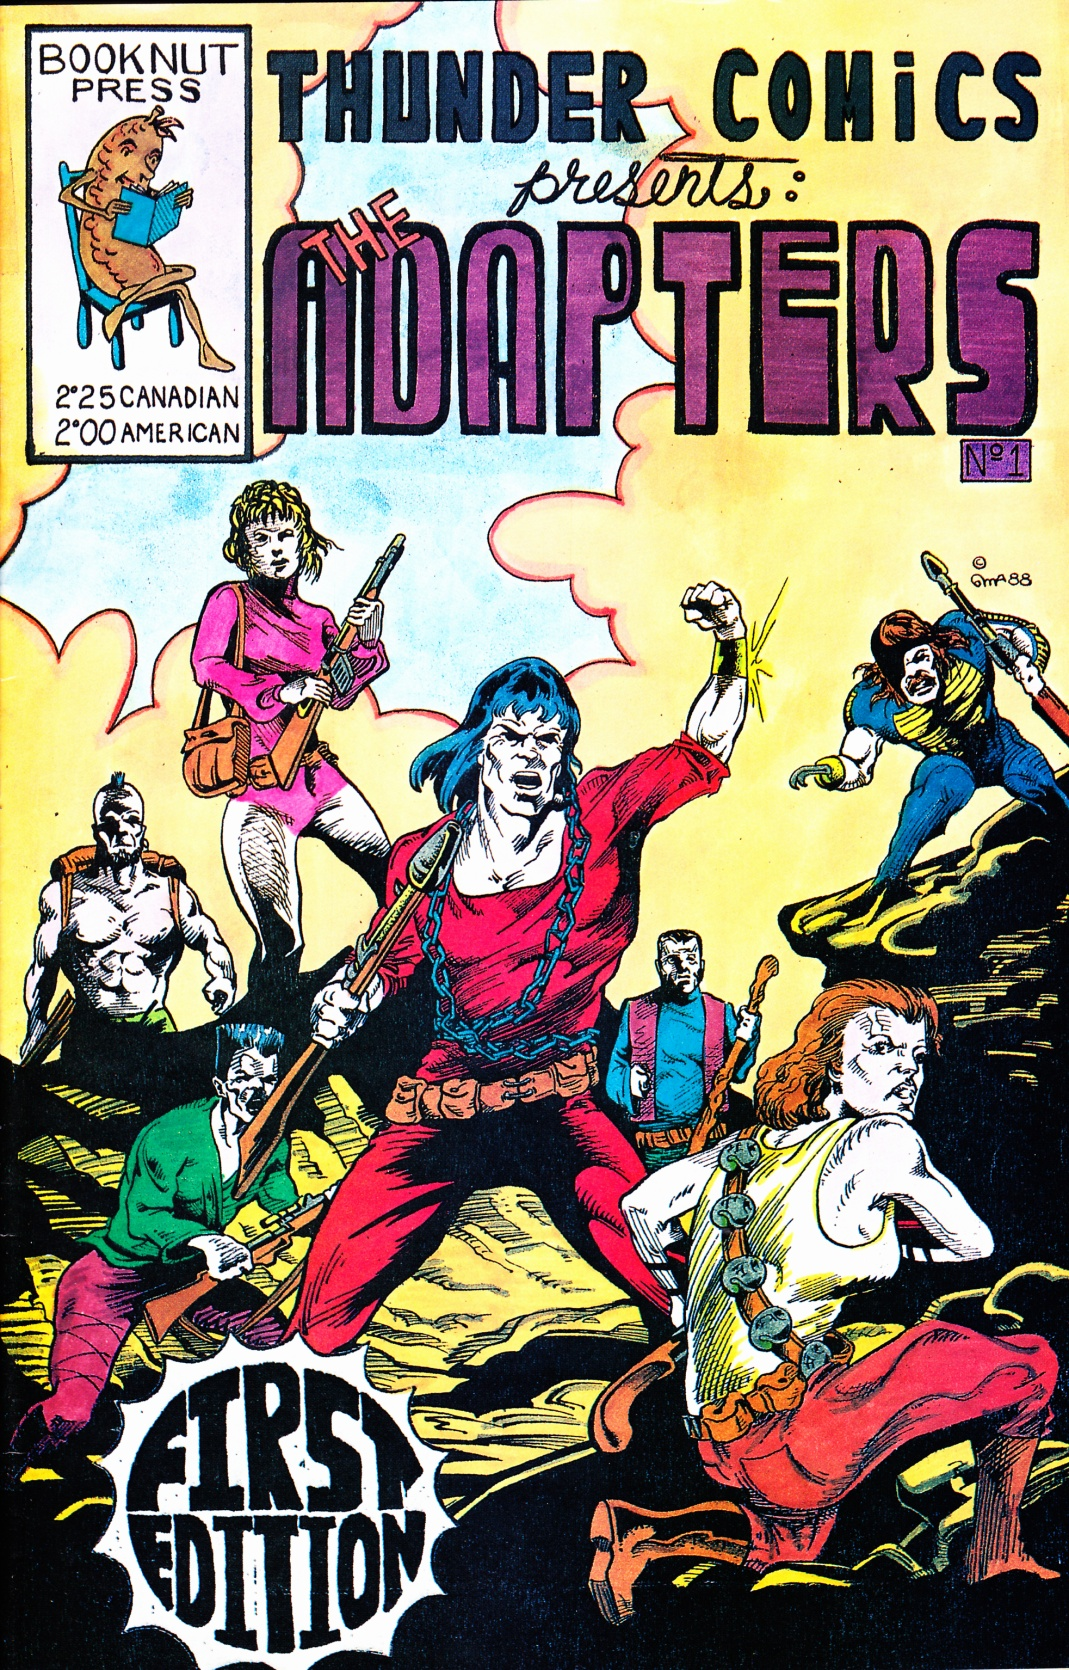 C:\Users\Robert\Documents\CARTOONING ILLUSTRATION ANIMATION\IMAGE COVER COMIC BOOK\THUNDER COMICS, 1-1, 1988, fc.jpg